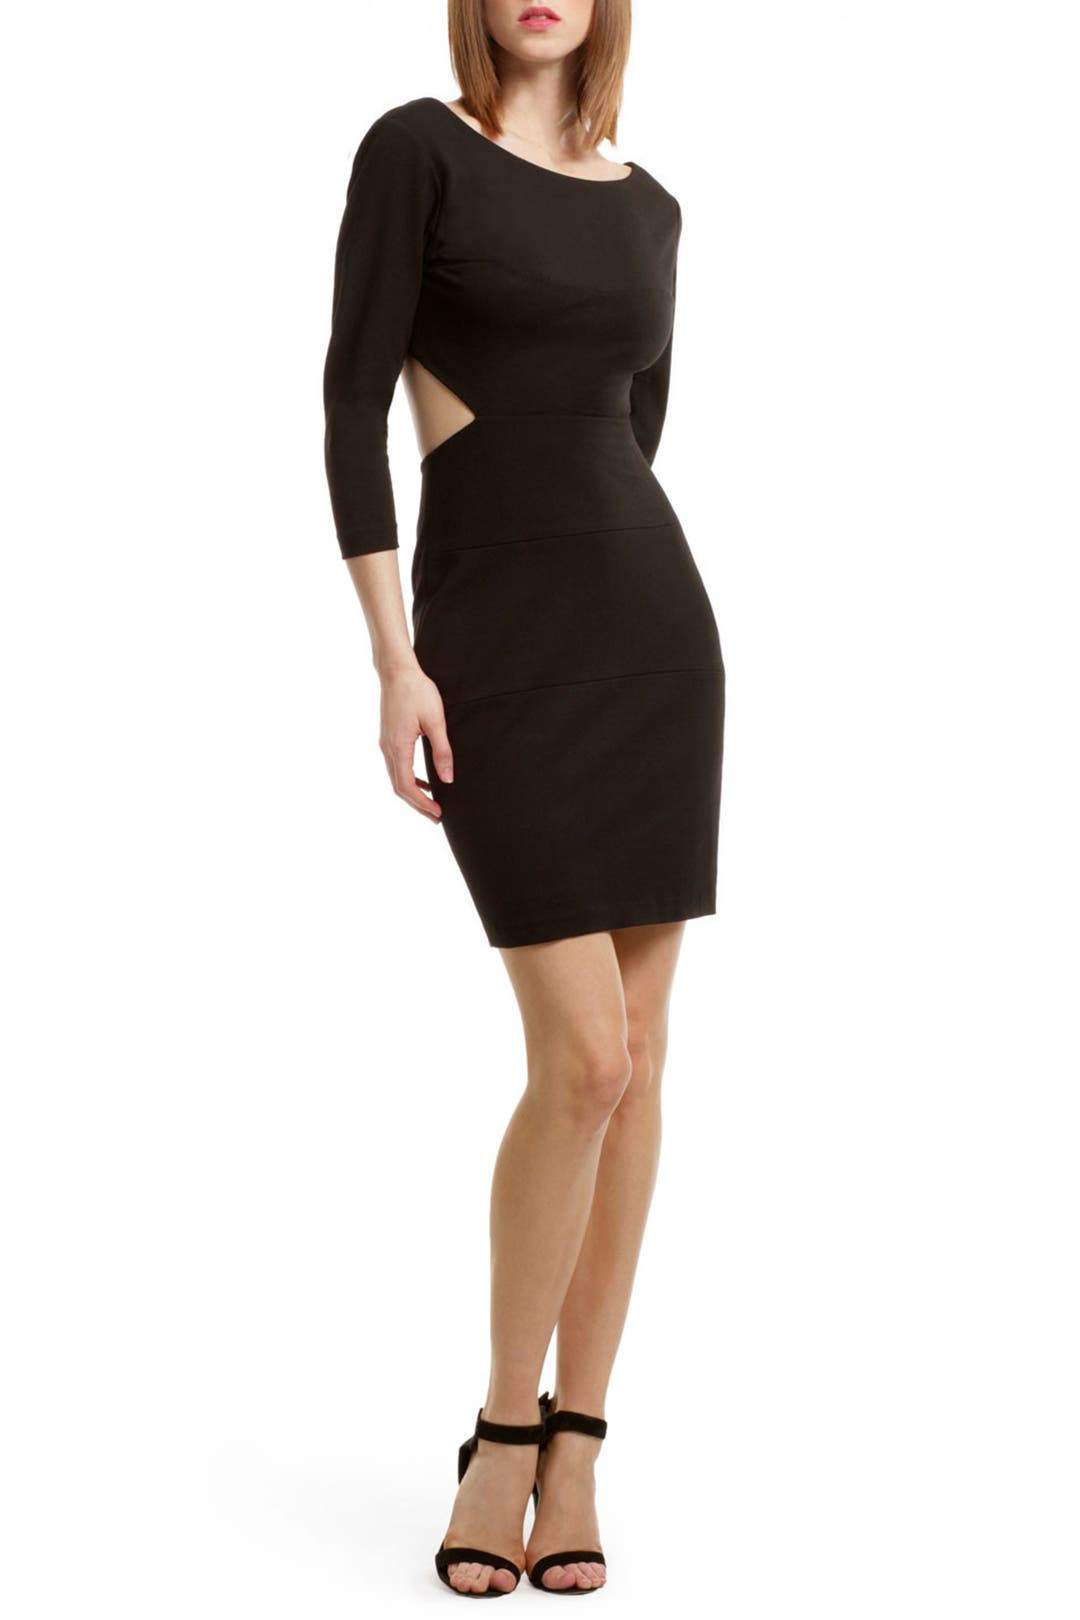 Cut It Out Dress by Halston Heritage